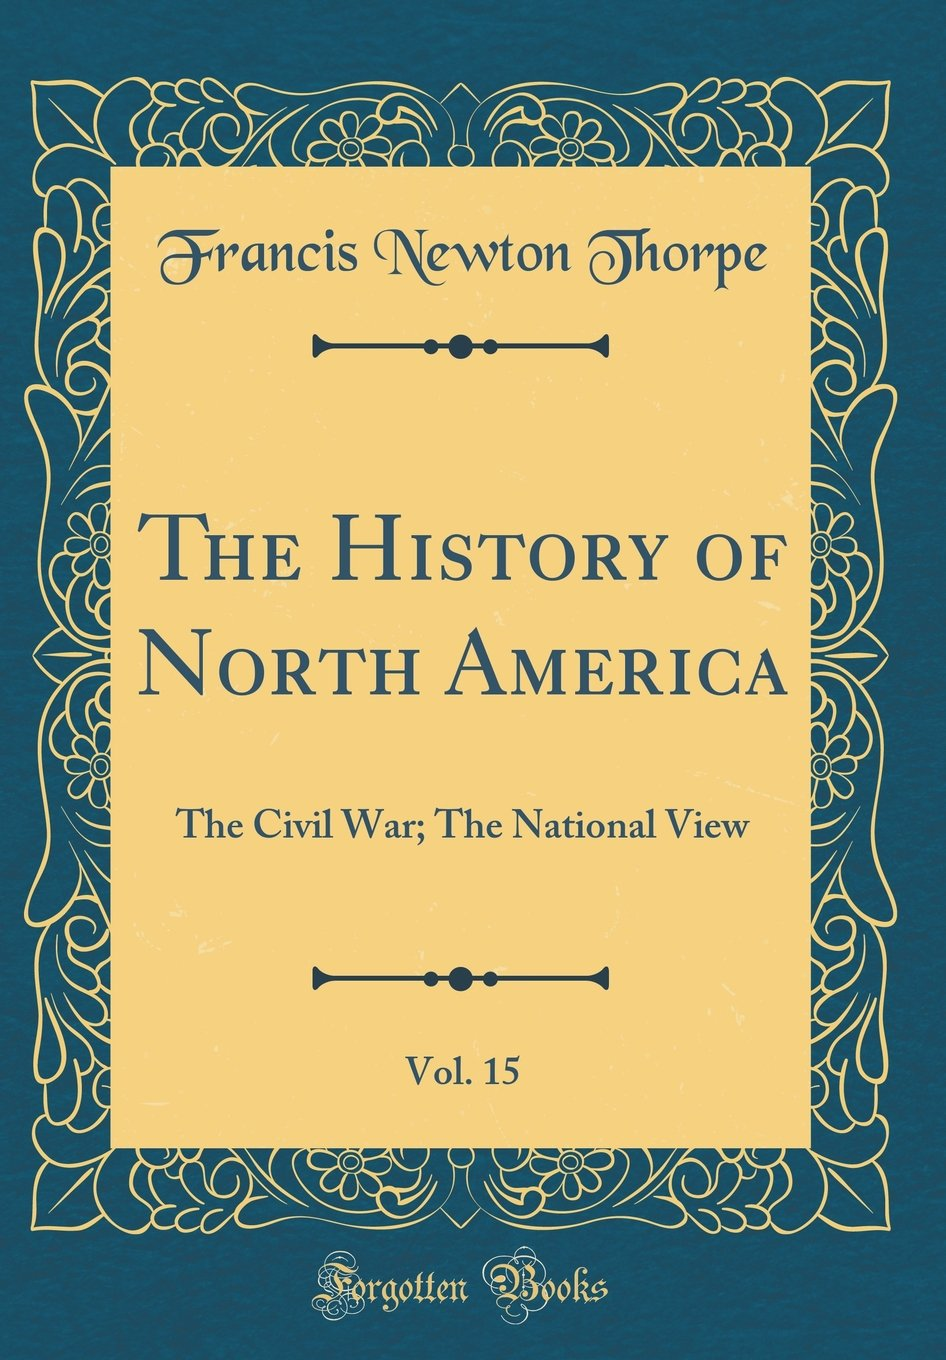 The History of North America, Vol. 15: The Civil War; The National View (Classic Reprint) ebook